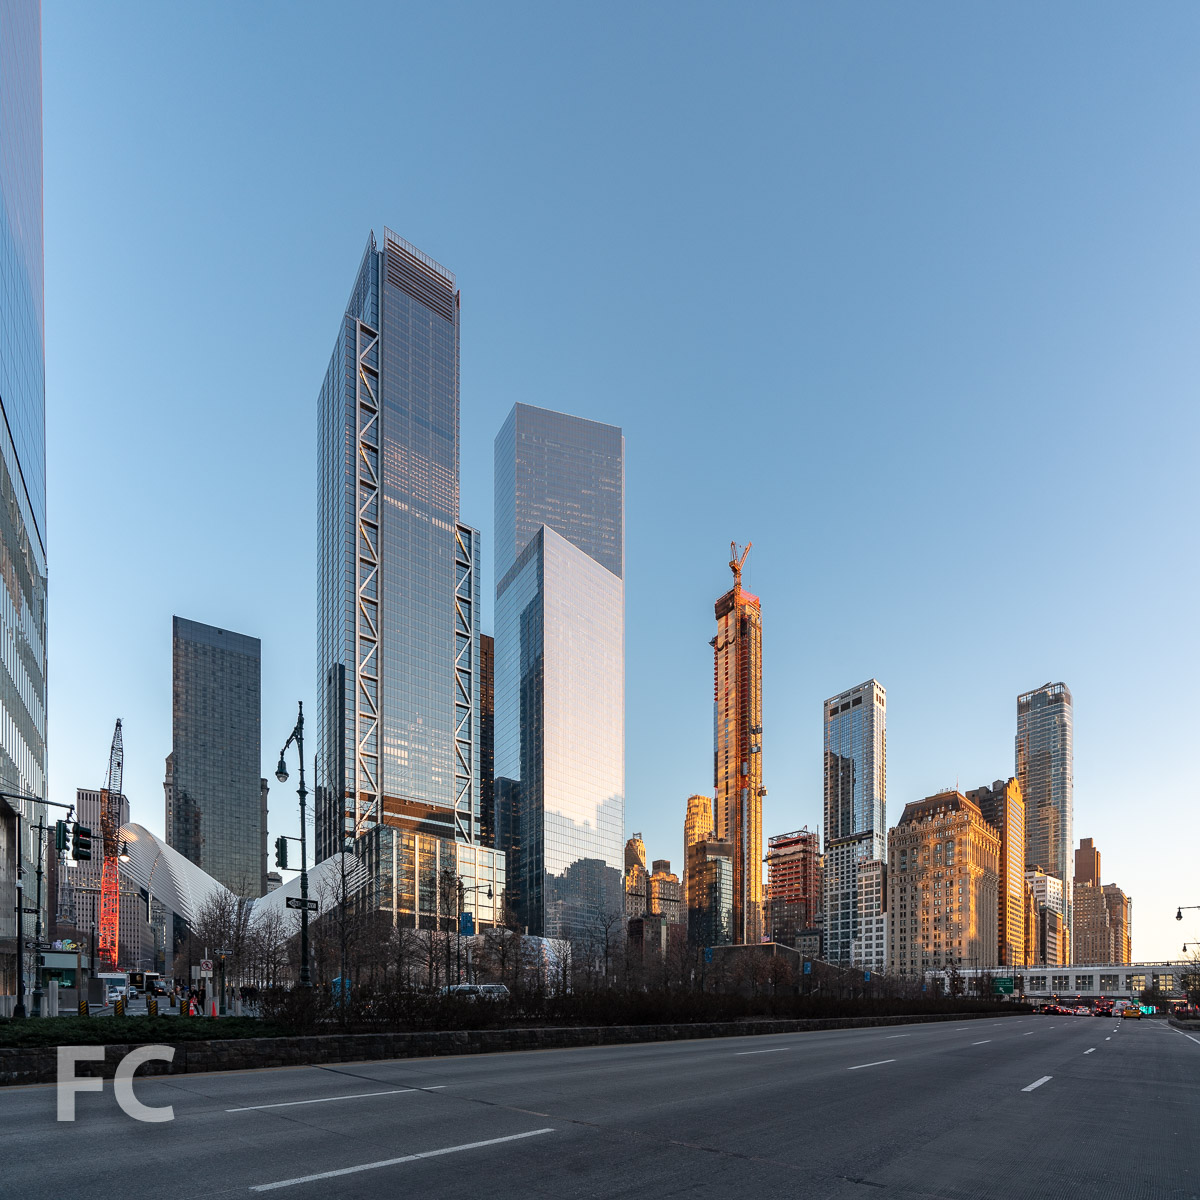 Northwest corner of the tower and the World Trade Center site from West Street.